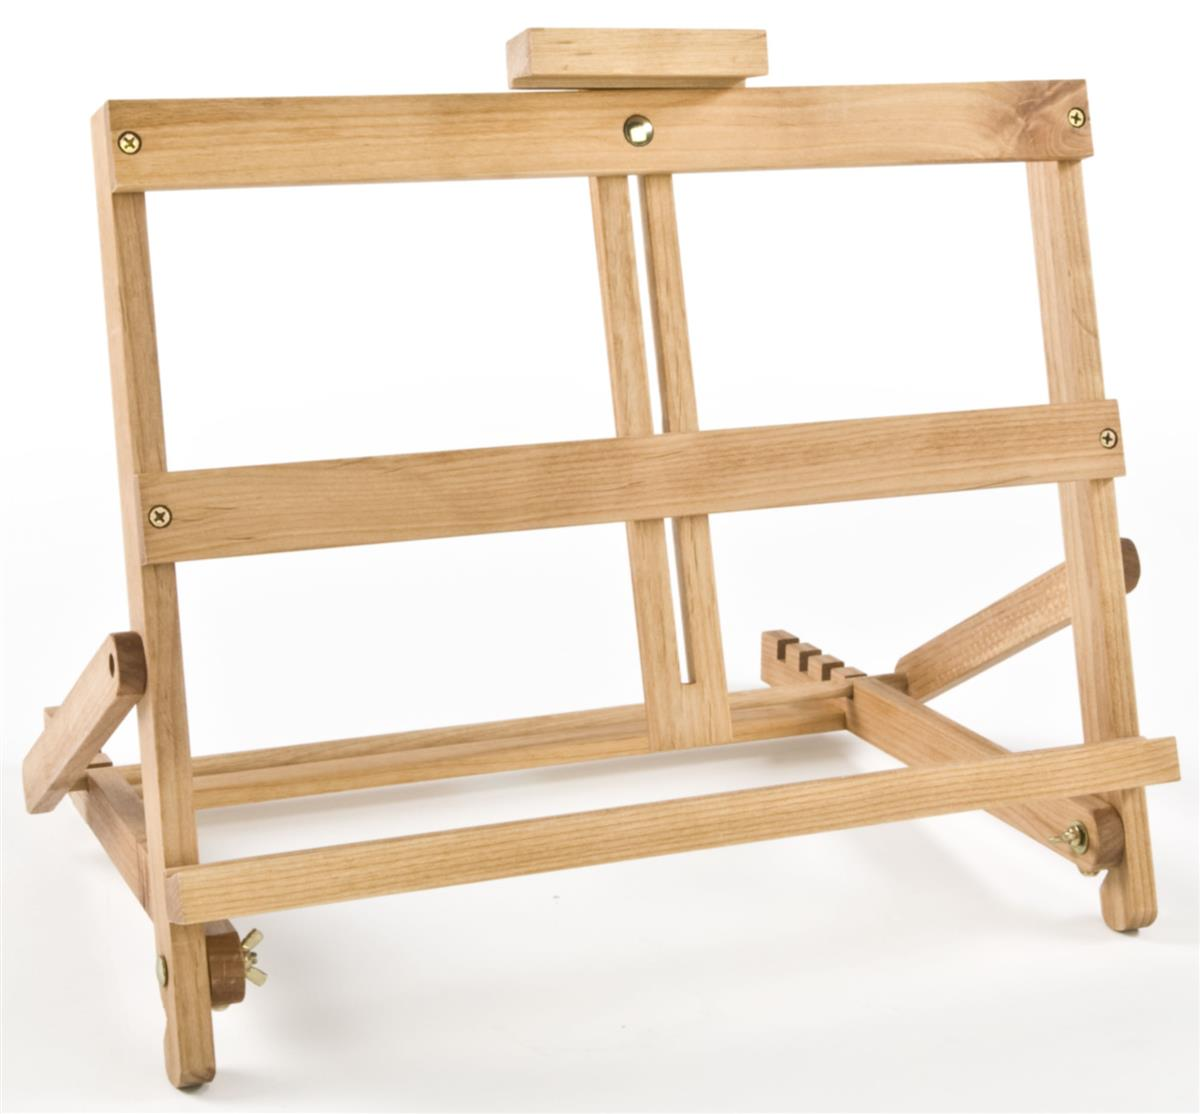 Folding easel solid beech wood frame display for How to display picture frames on a table